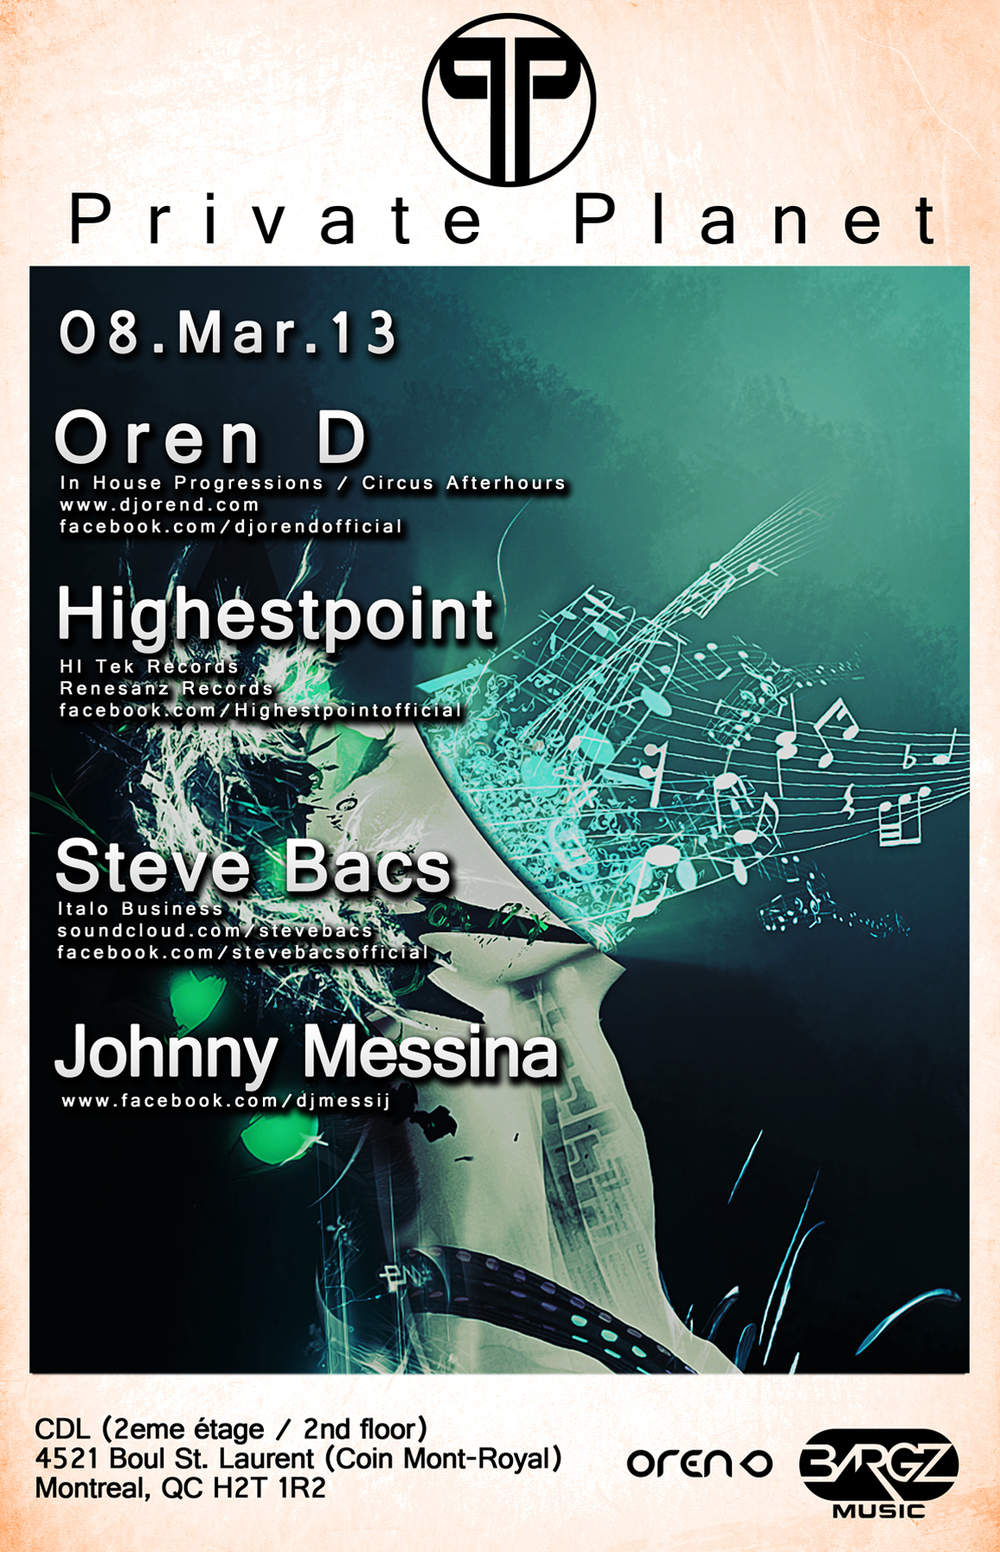 Oren D, Highestpoint, Steve Bacs, Johnny Messina CDL Montreal